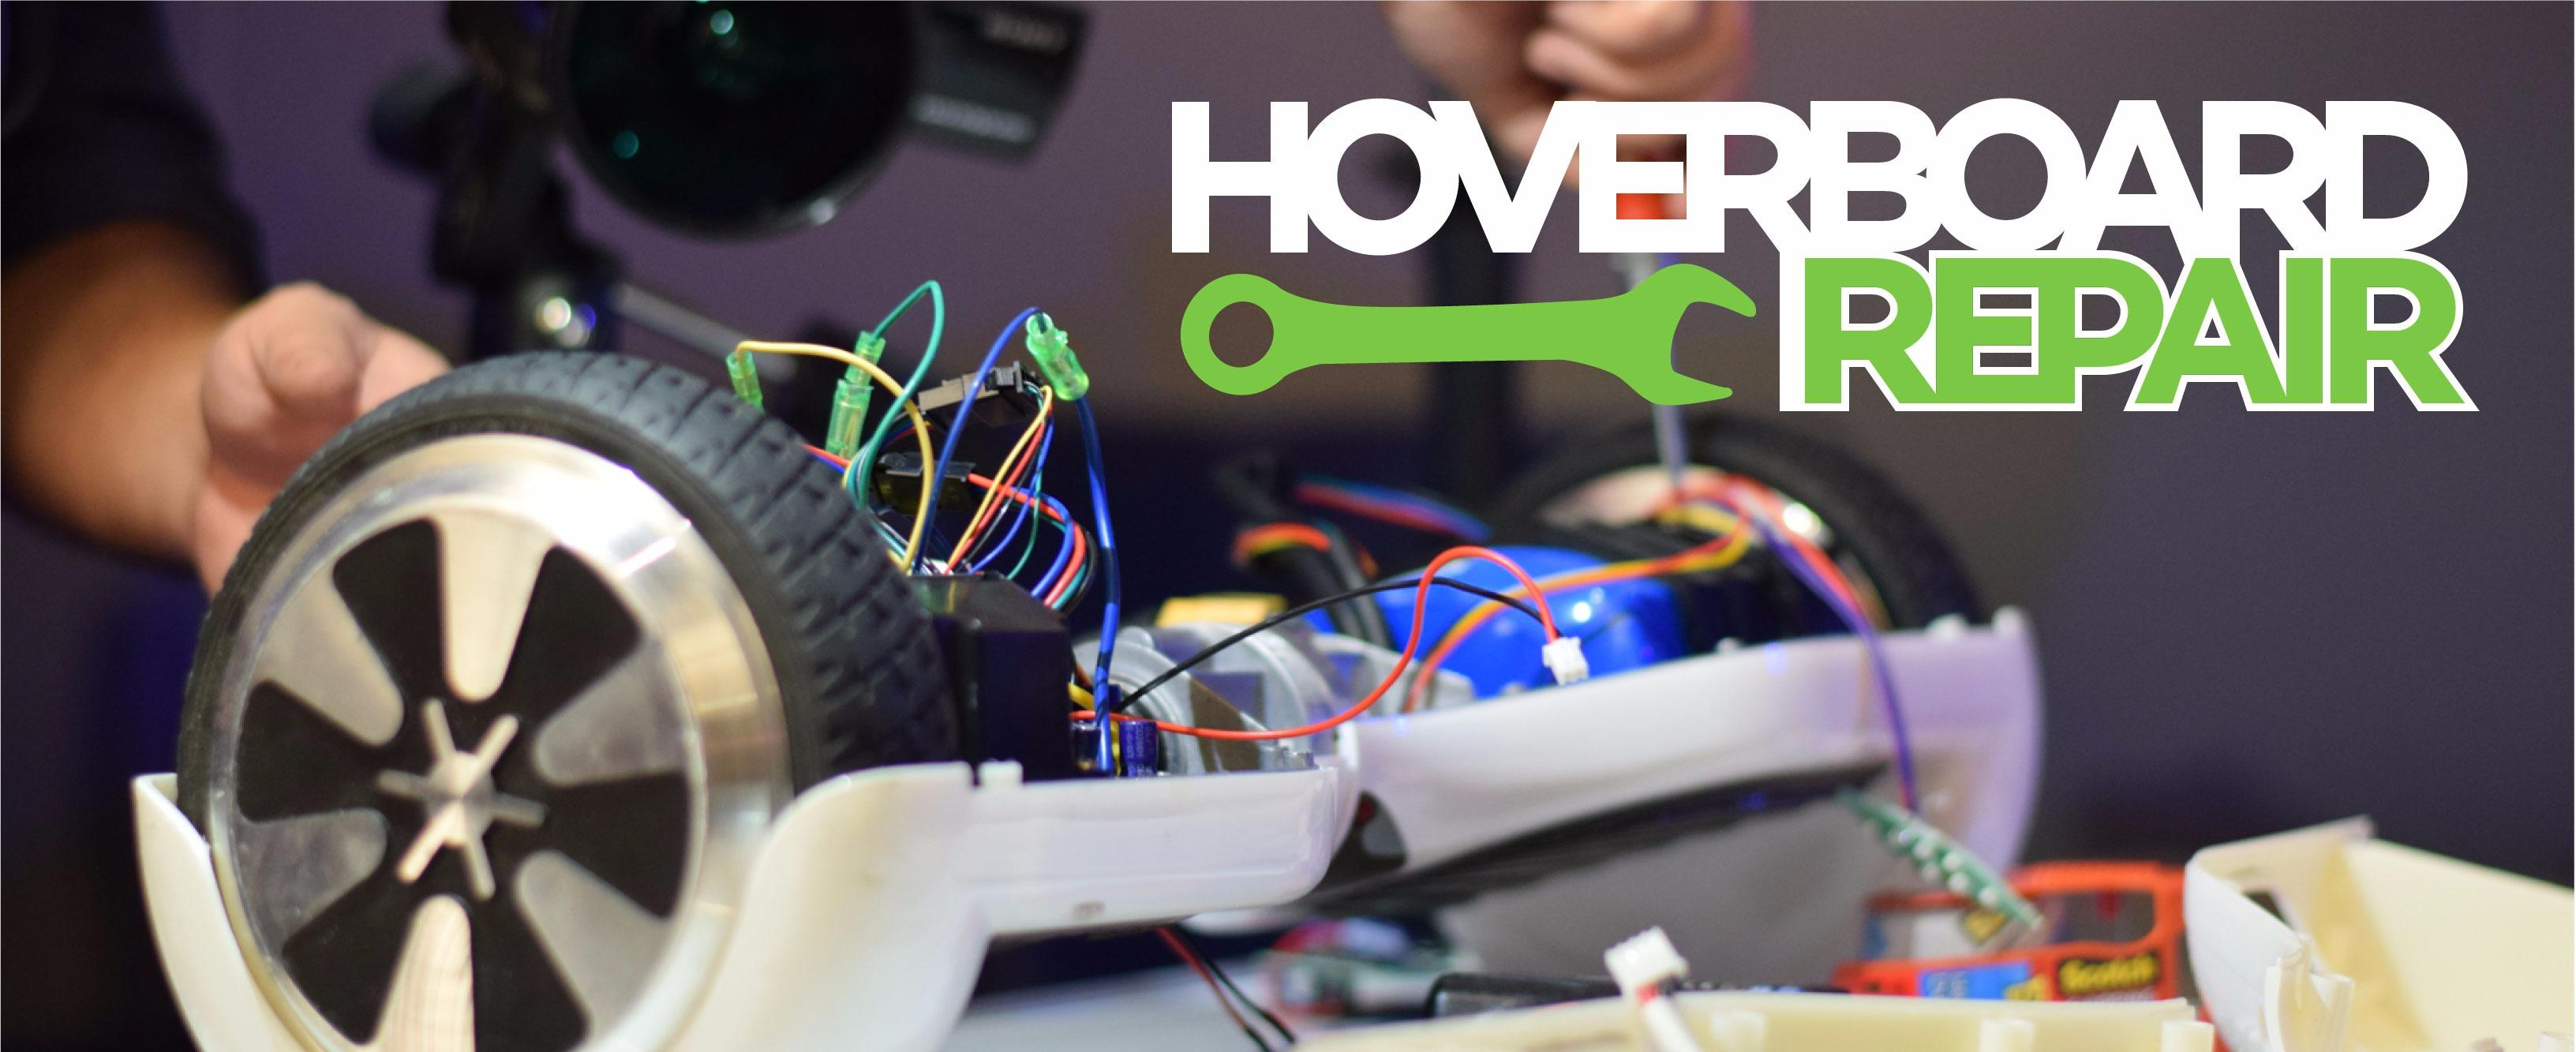 Hoverboard Repair Coupons Near Me In Nashville 8coupons